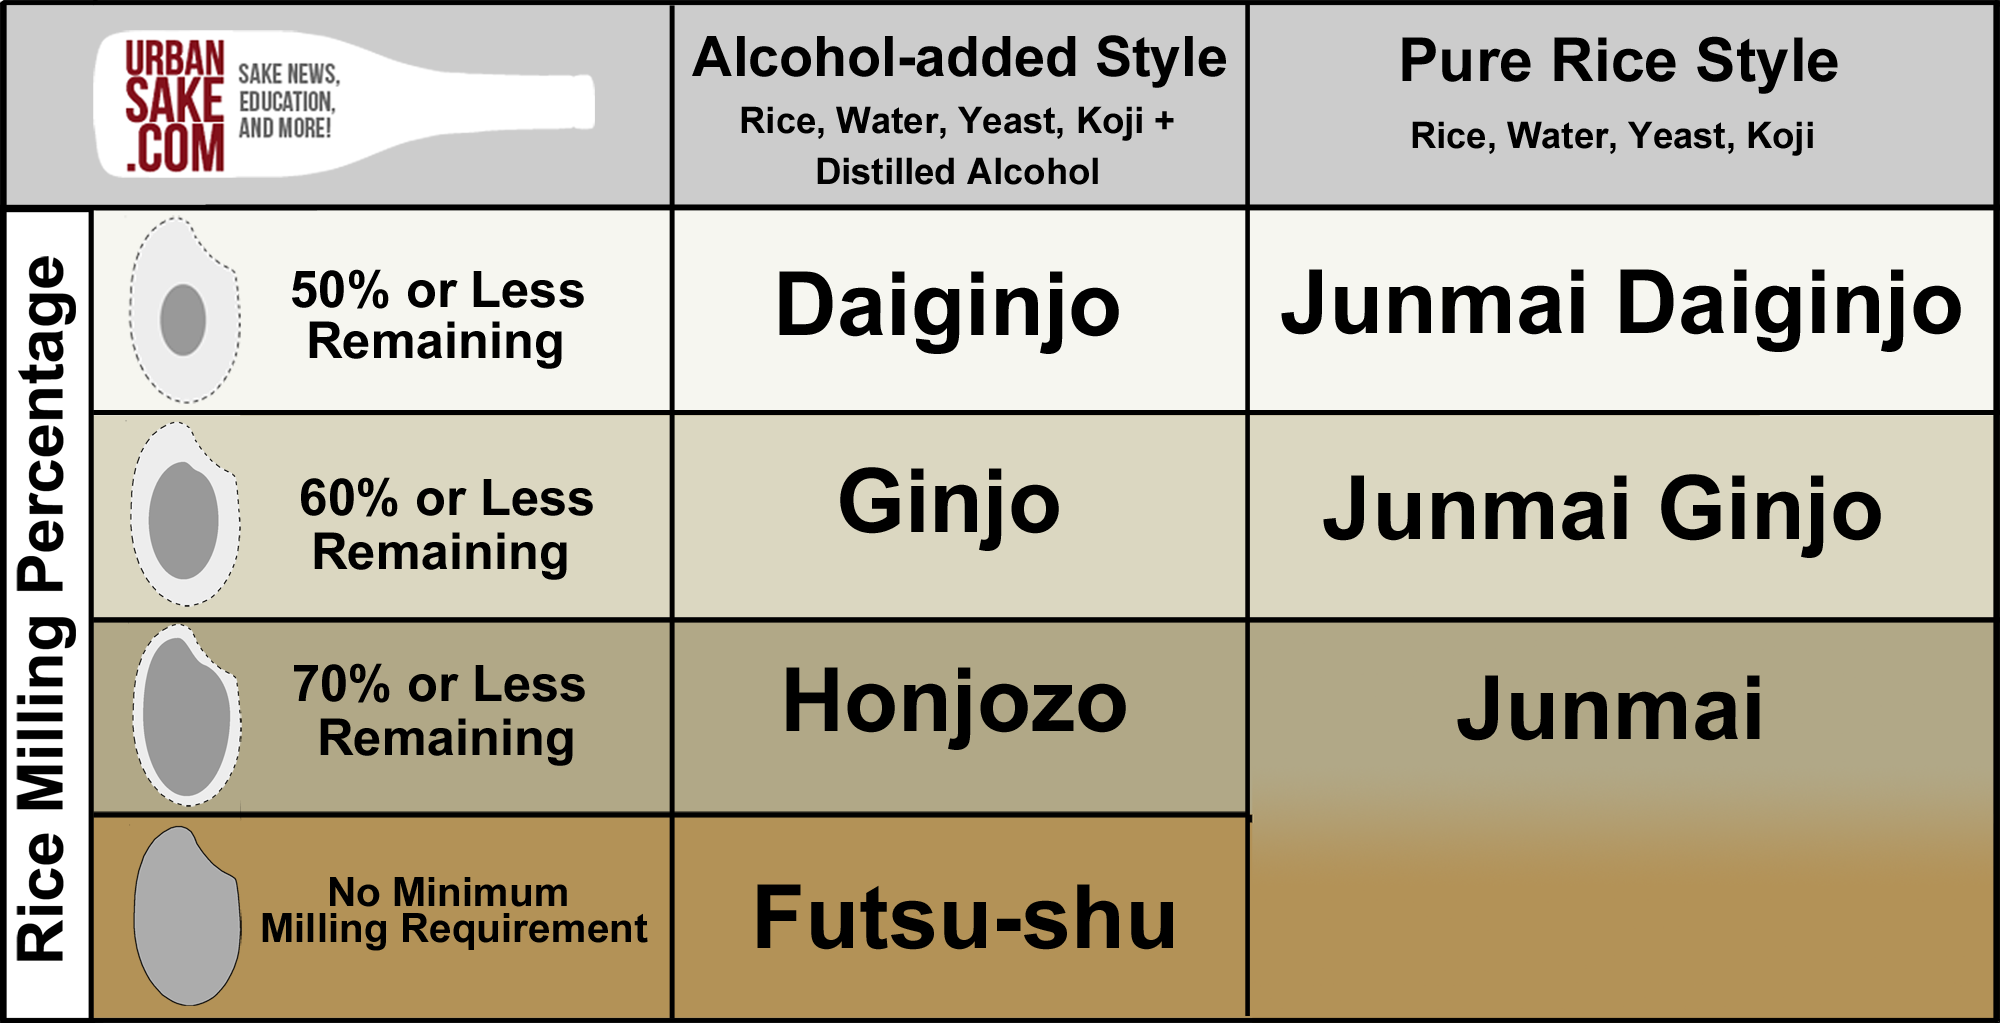 Demystifying sake the perfect beverage for all occasions eater the top grade of premium sake sake rice that is milled to at least 50 percent or less remaining is called daiginjo for the alcohol added style and junmai nvjuhfo Image collections